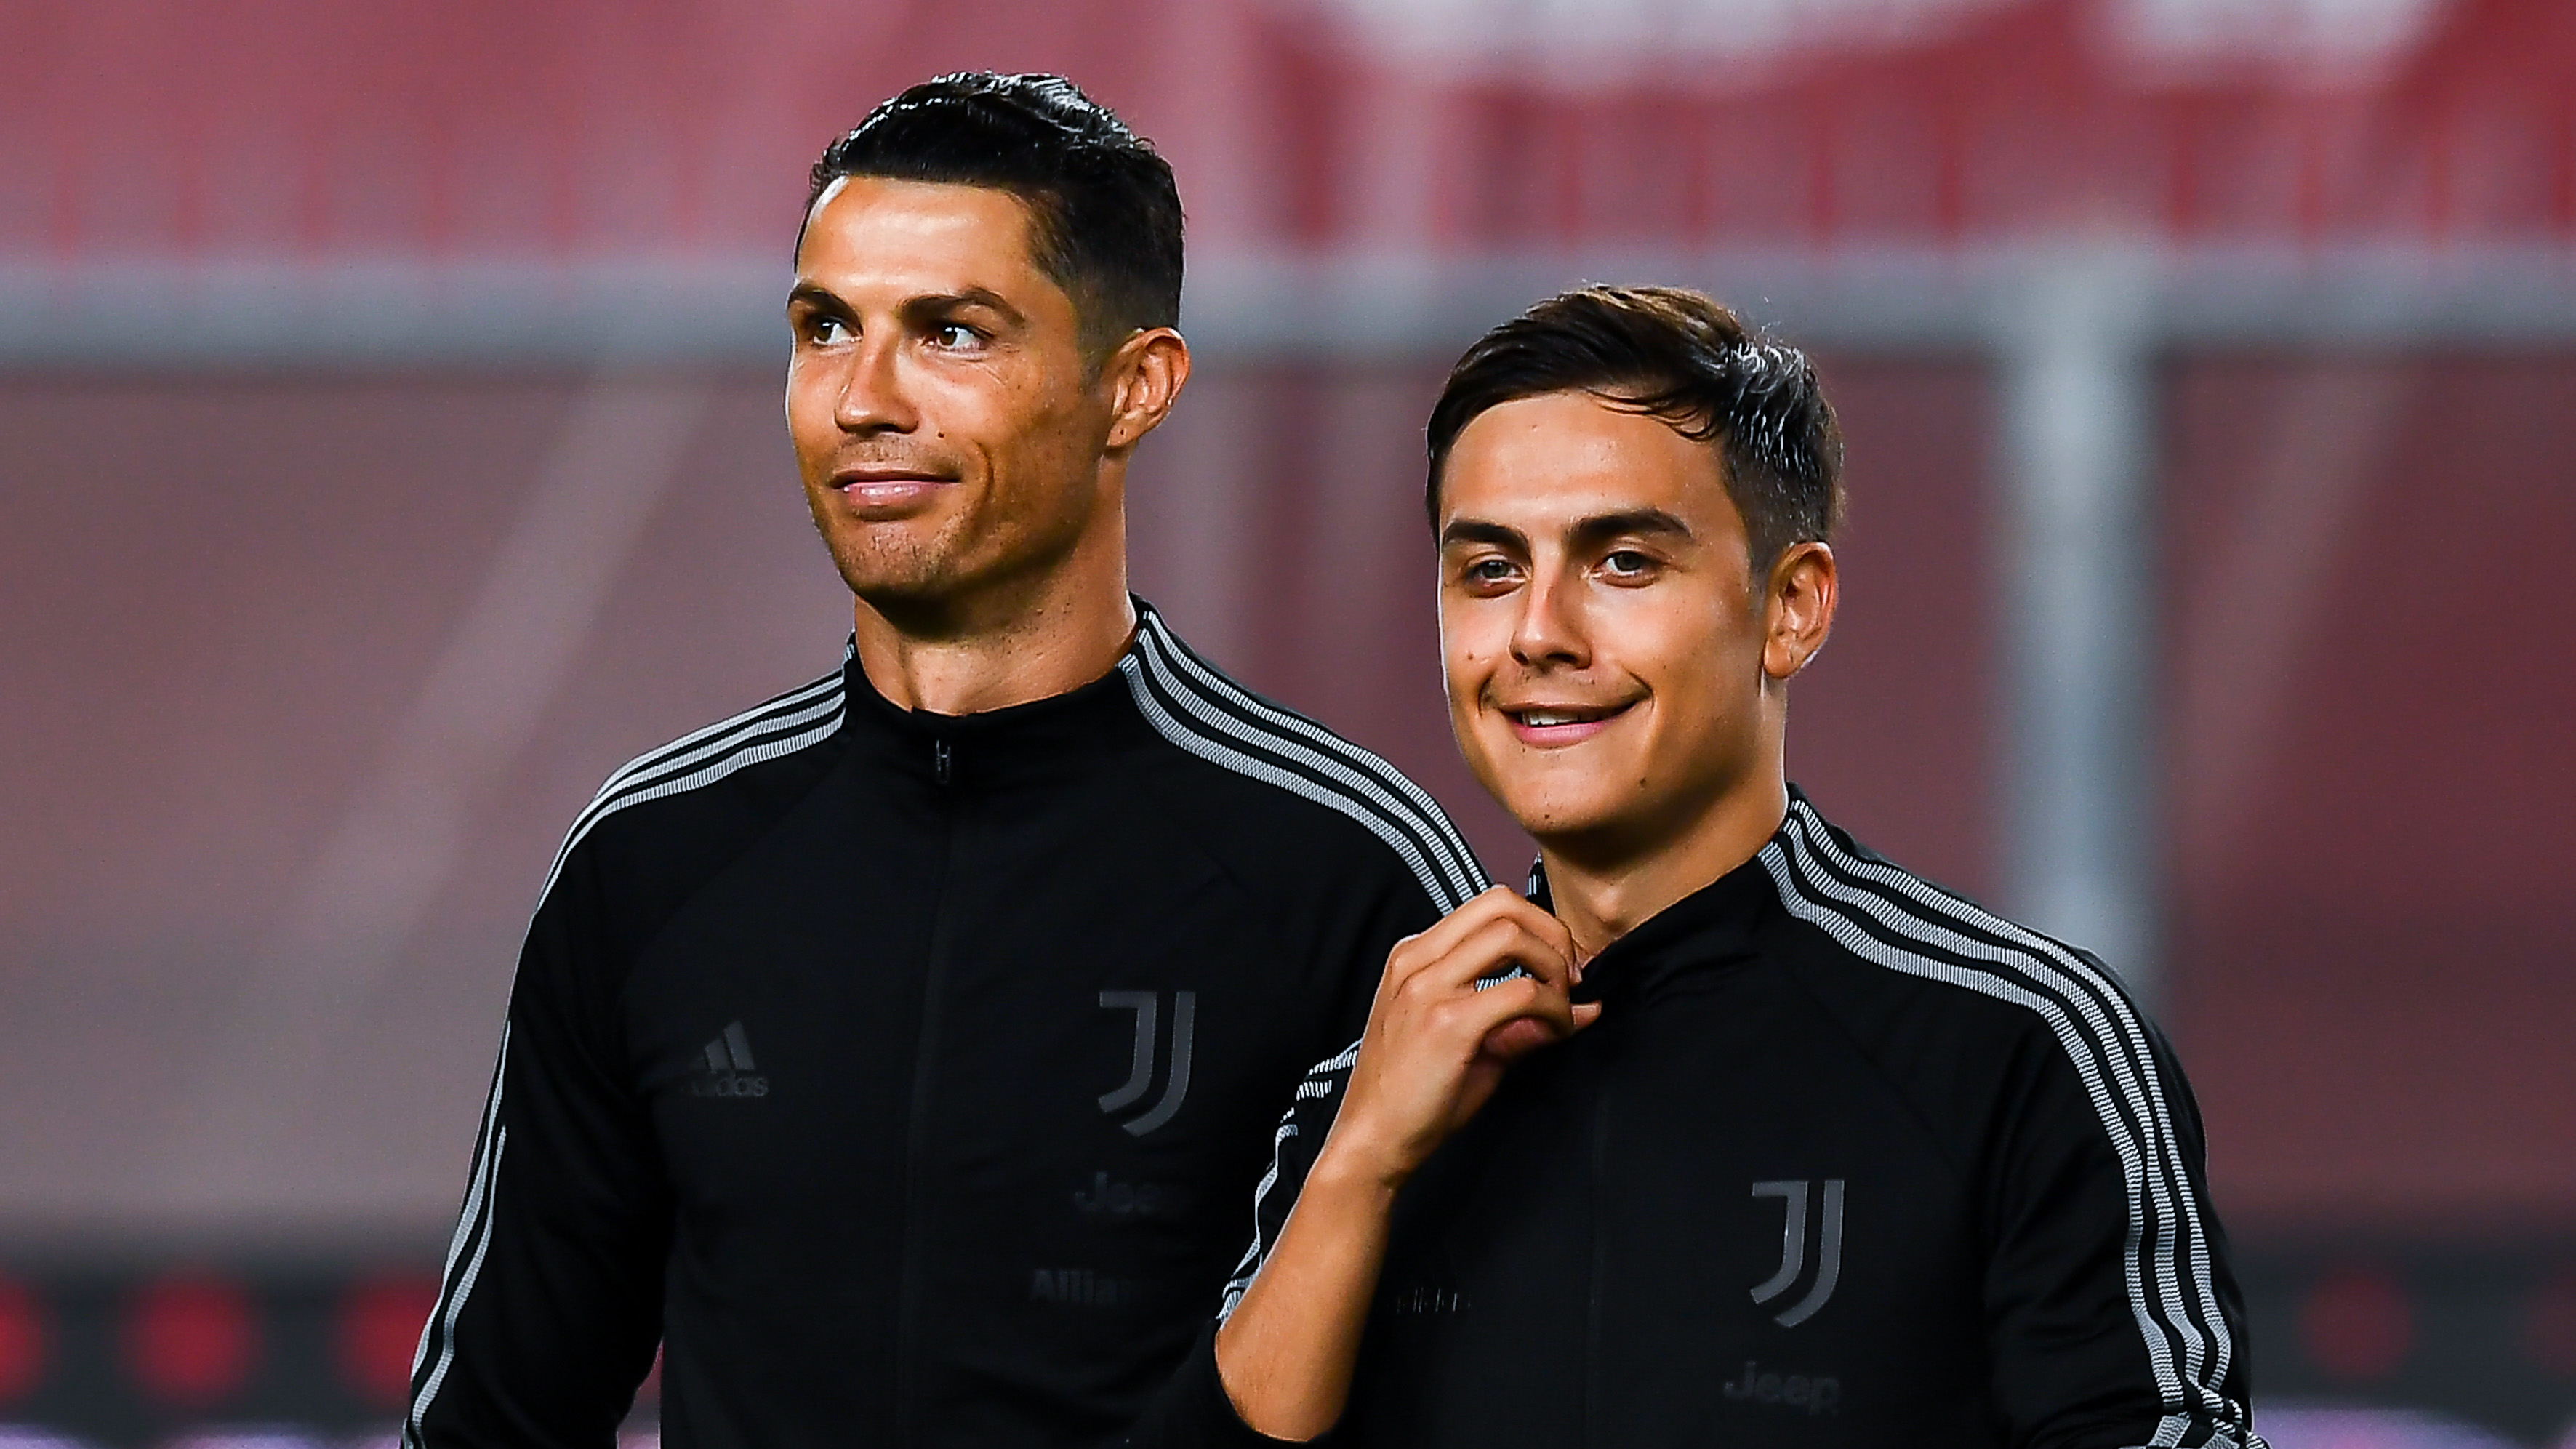 'Something has changed' - Ronaldo and Dybala working better together, admits Sarri